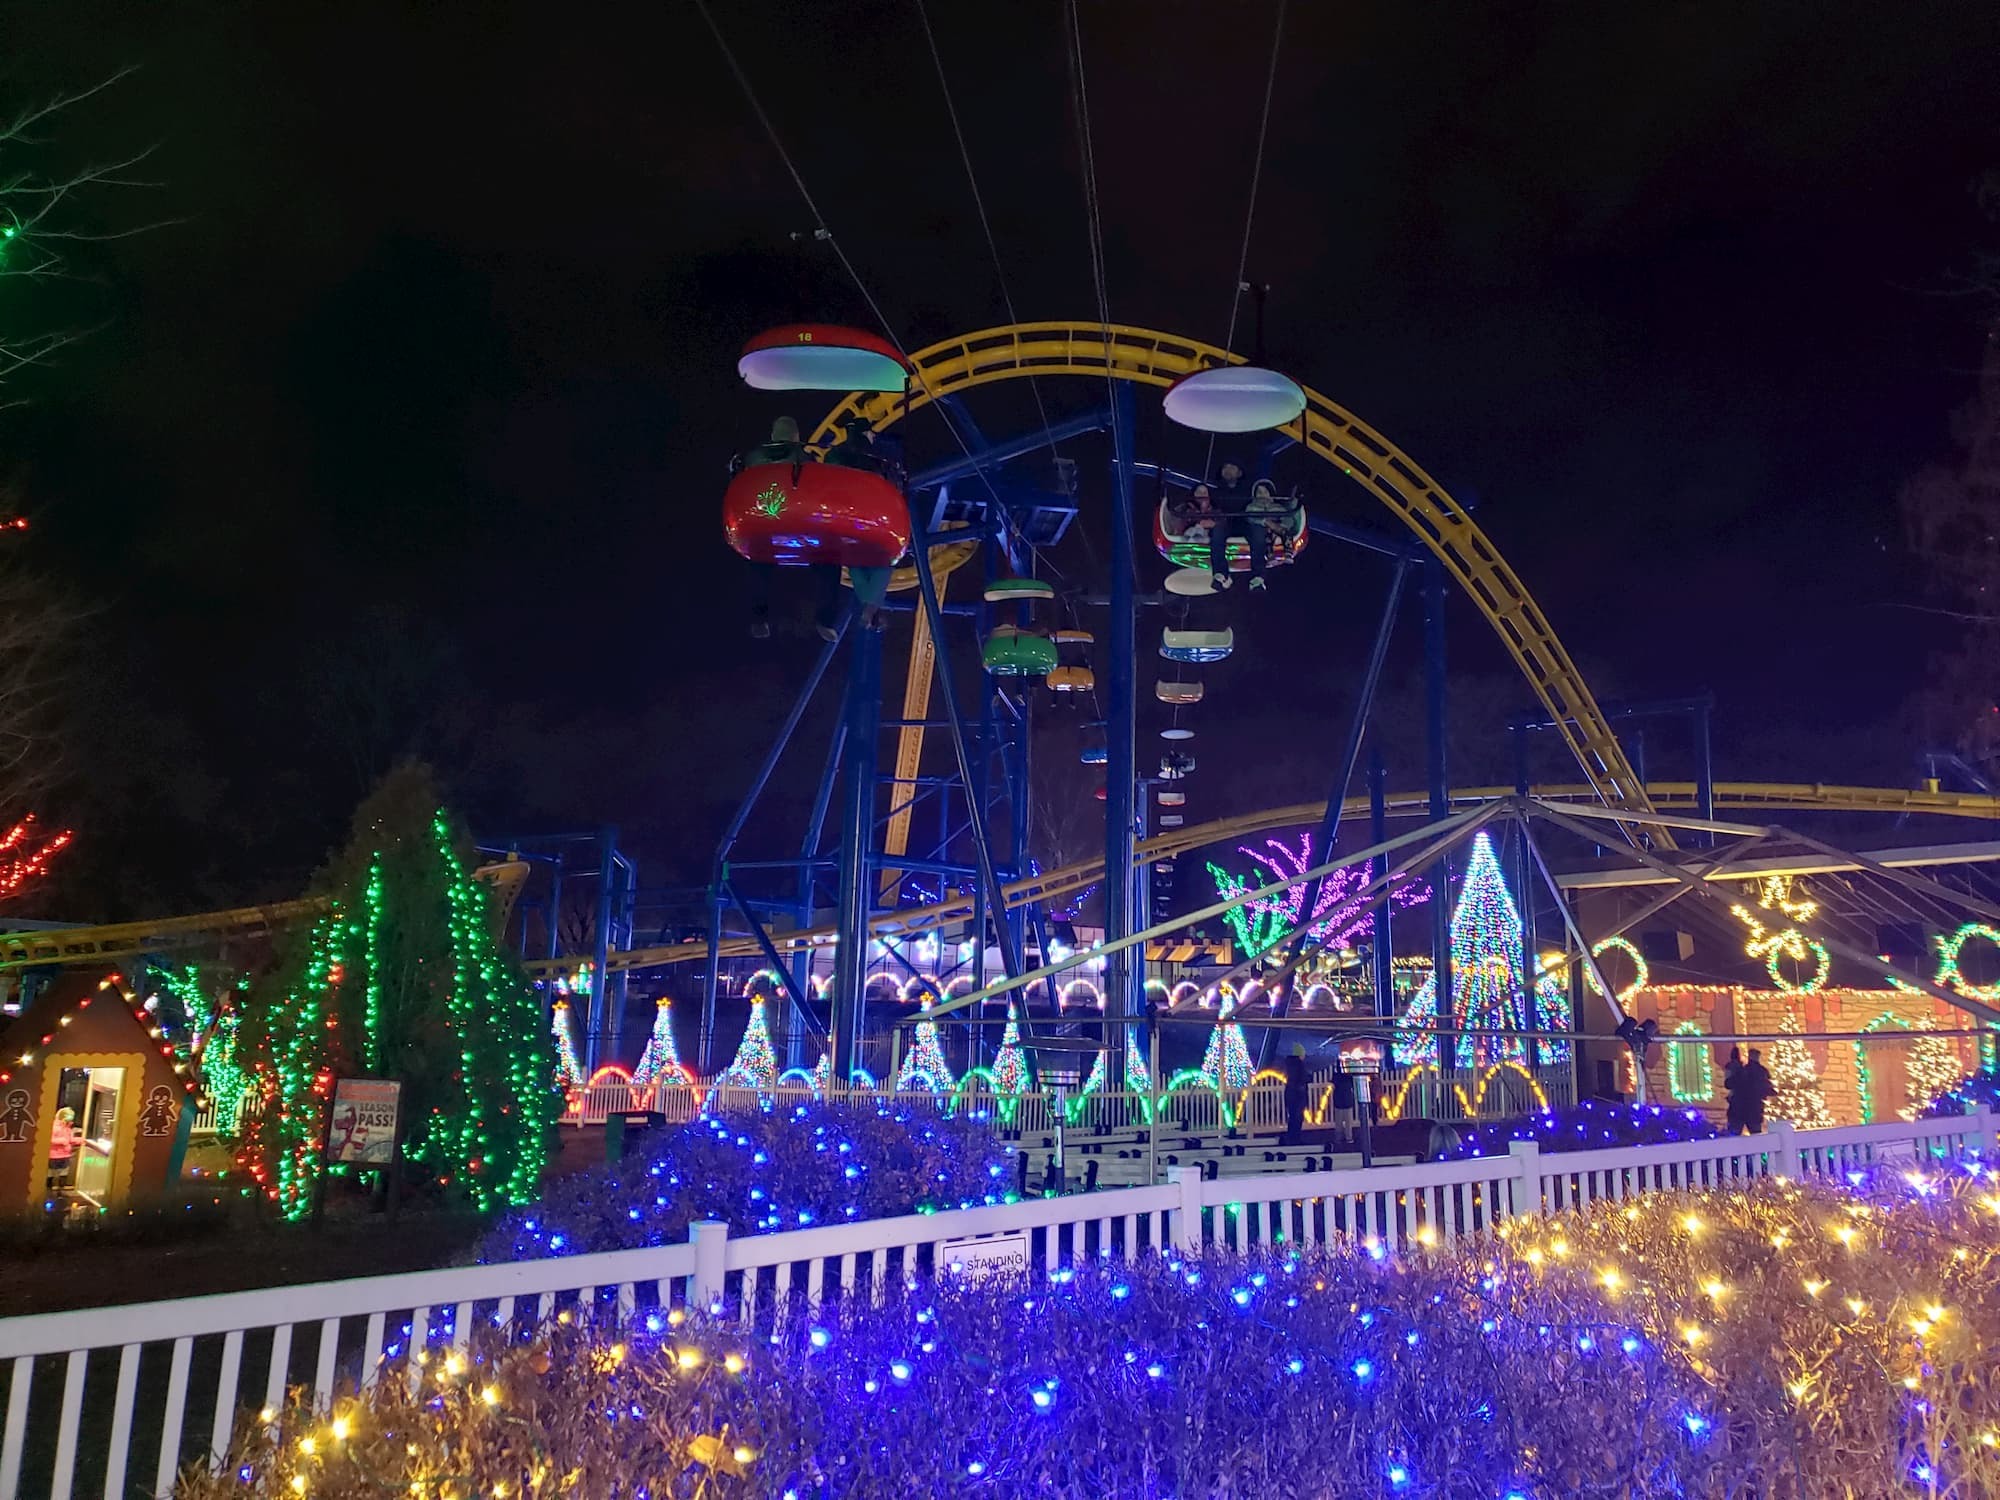 Dutch Wonderland's Winter Wonderland